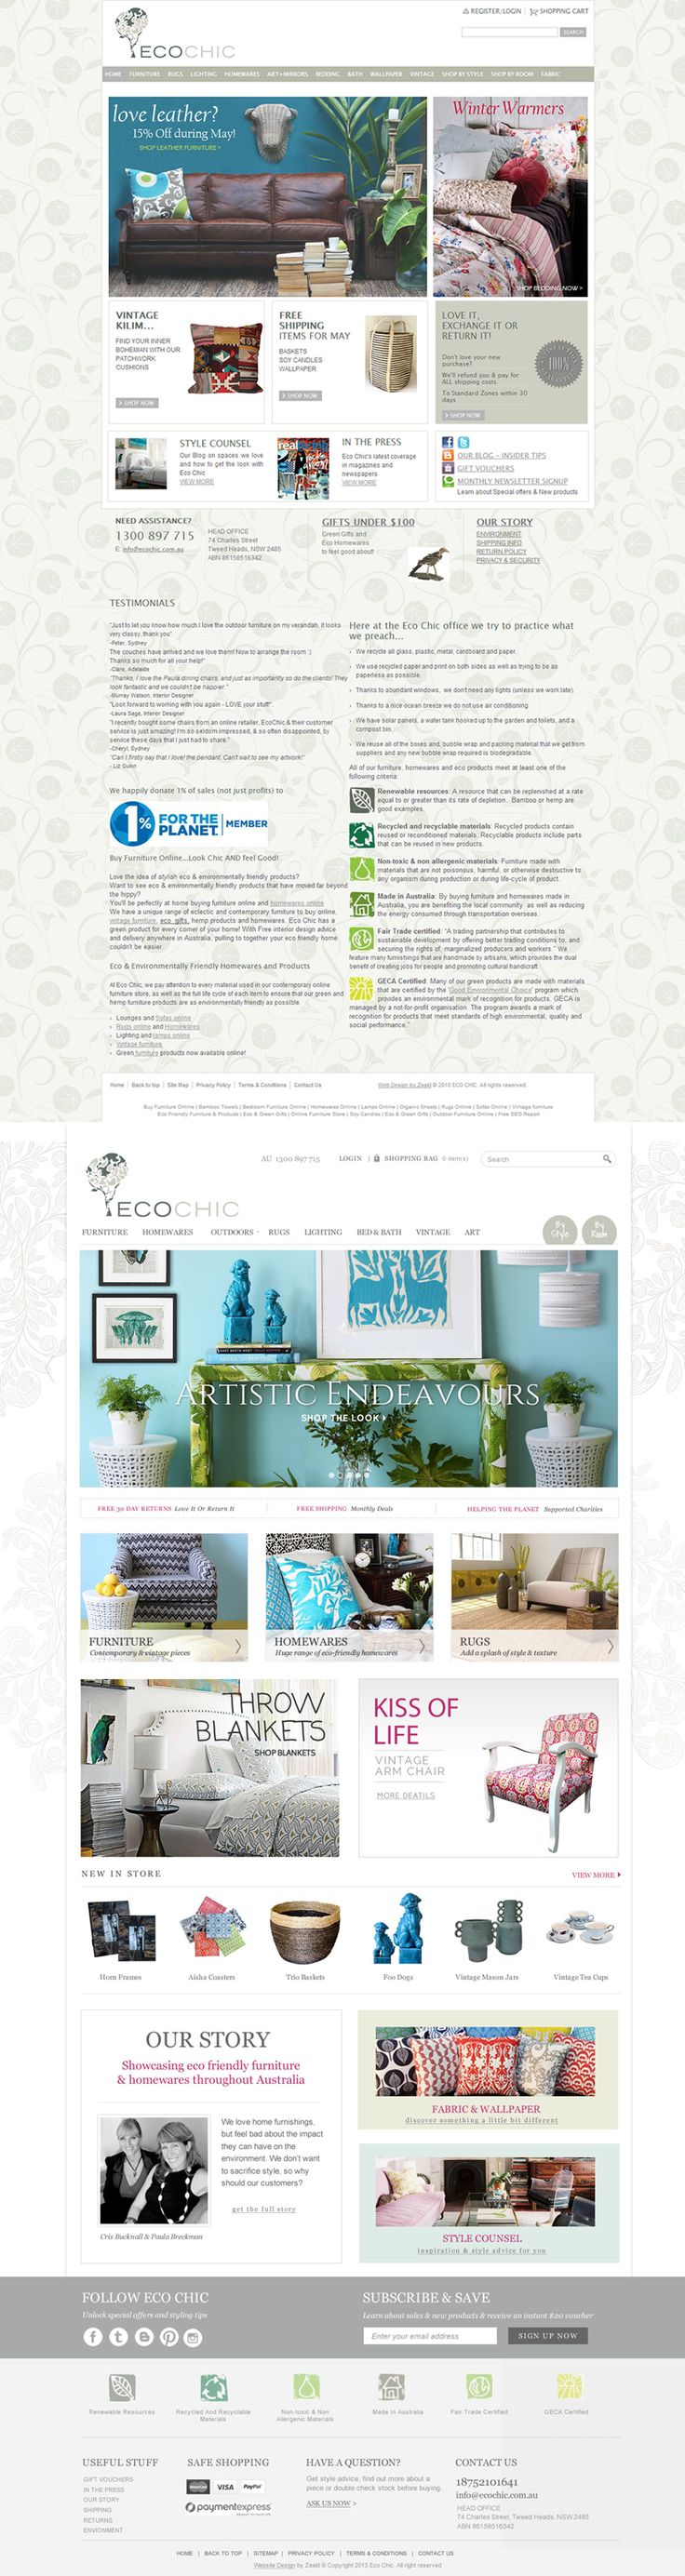 Eco Chic Website Redesign